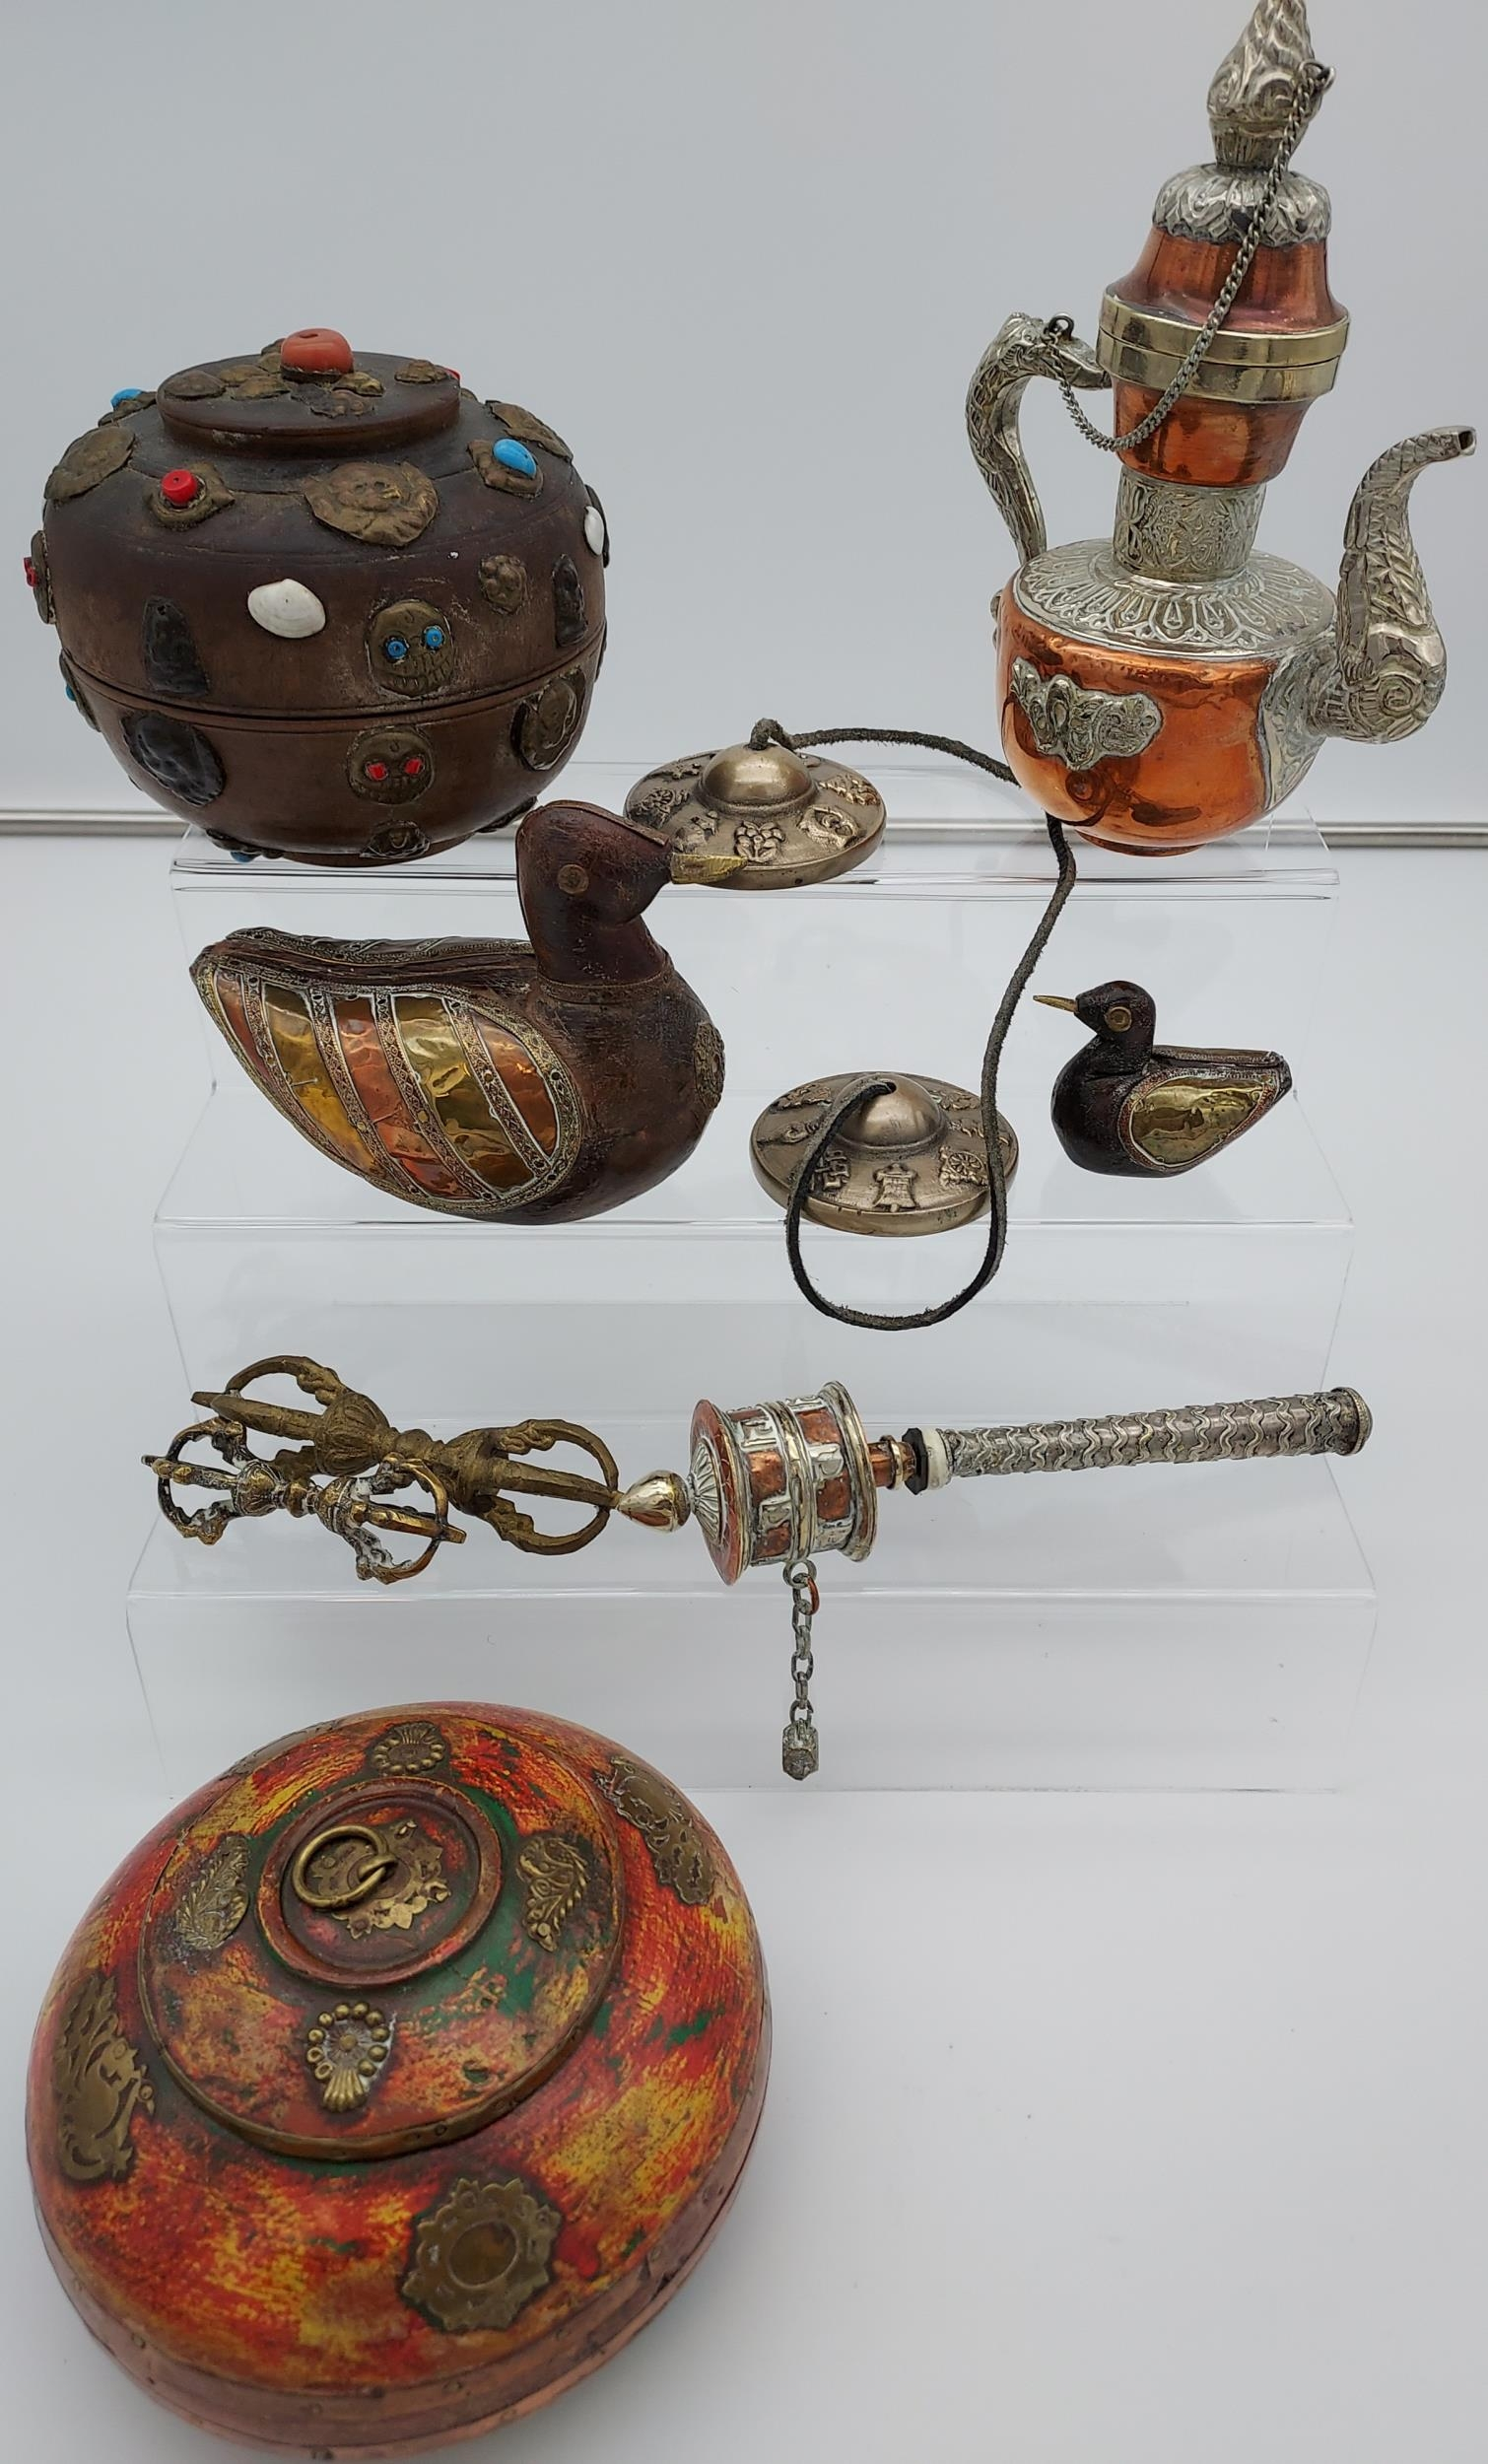 A collection of Tibetan antiques to include silver and copper teapot, prayer wheel, meditation chime - Image 2 of 6